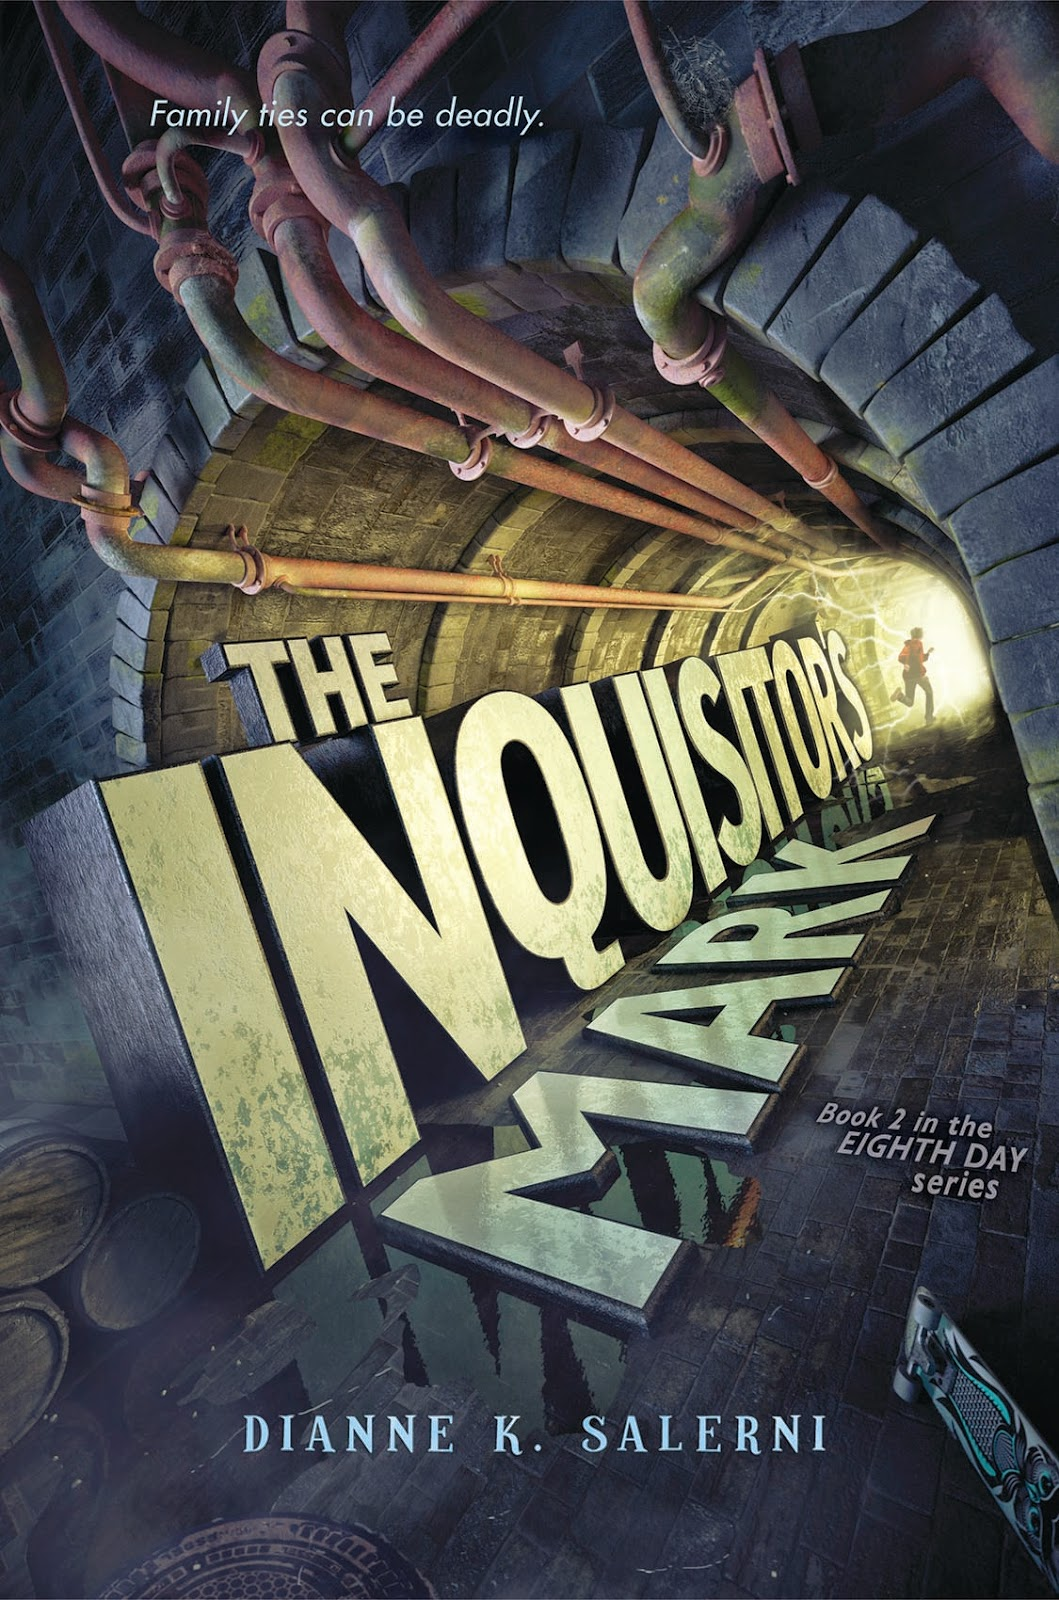 http://www.amazon.com/Inquisitors-Mark-Eighth-Day/dp/0062272187/ref=sr_1_1?ie=UTF8&qid=1423751344&sr=8-1&keywords=the+inquisitor%27s+mark